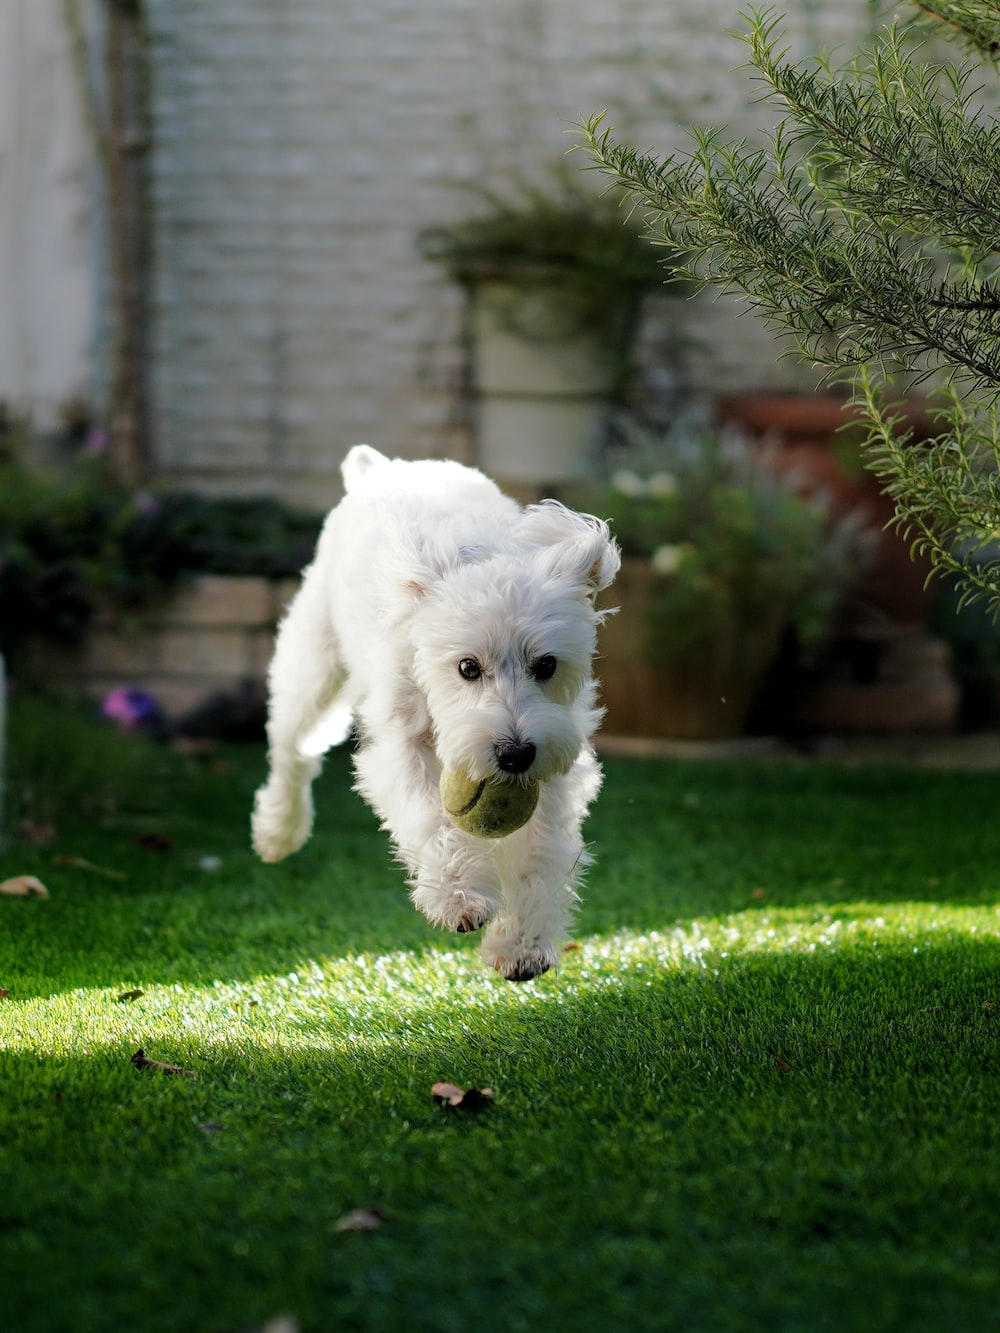 selective focus photography of running white dog biting green ball